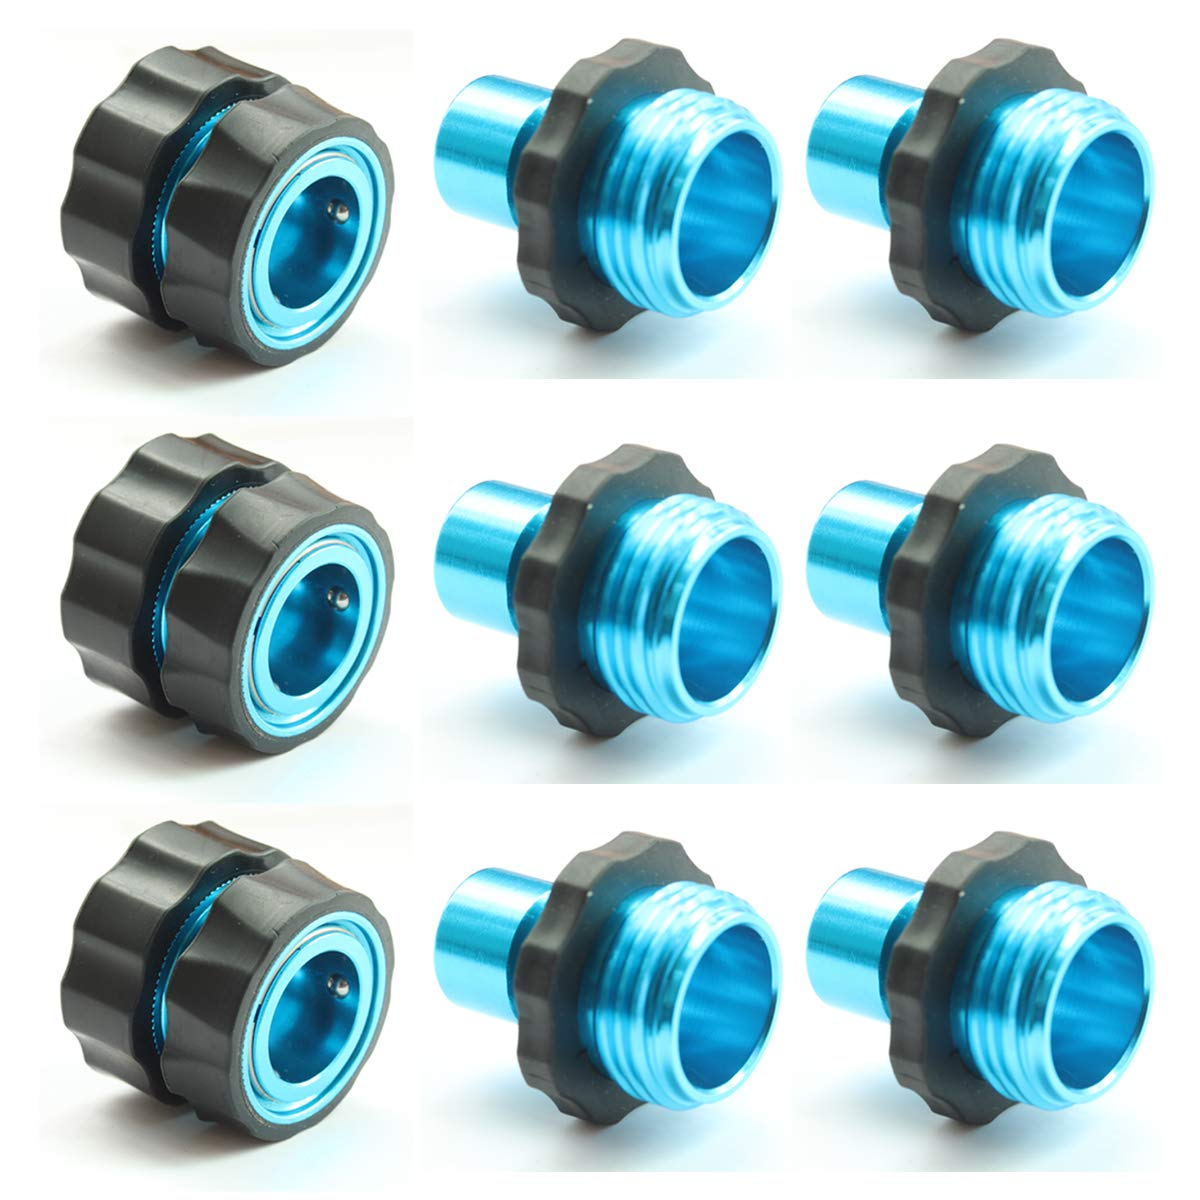 PLG Blue Garden Quick Hose Connectors,3 Female+6 Male,3/4 in. Water Hose Fittings